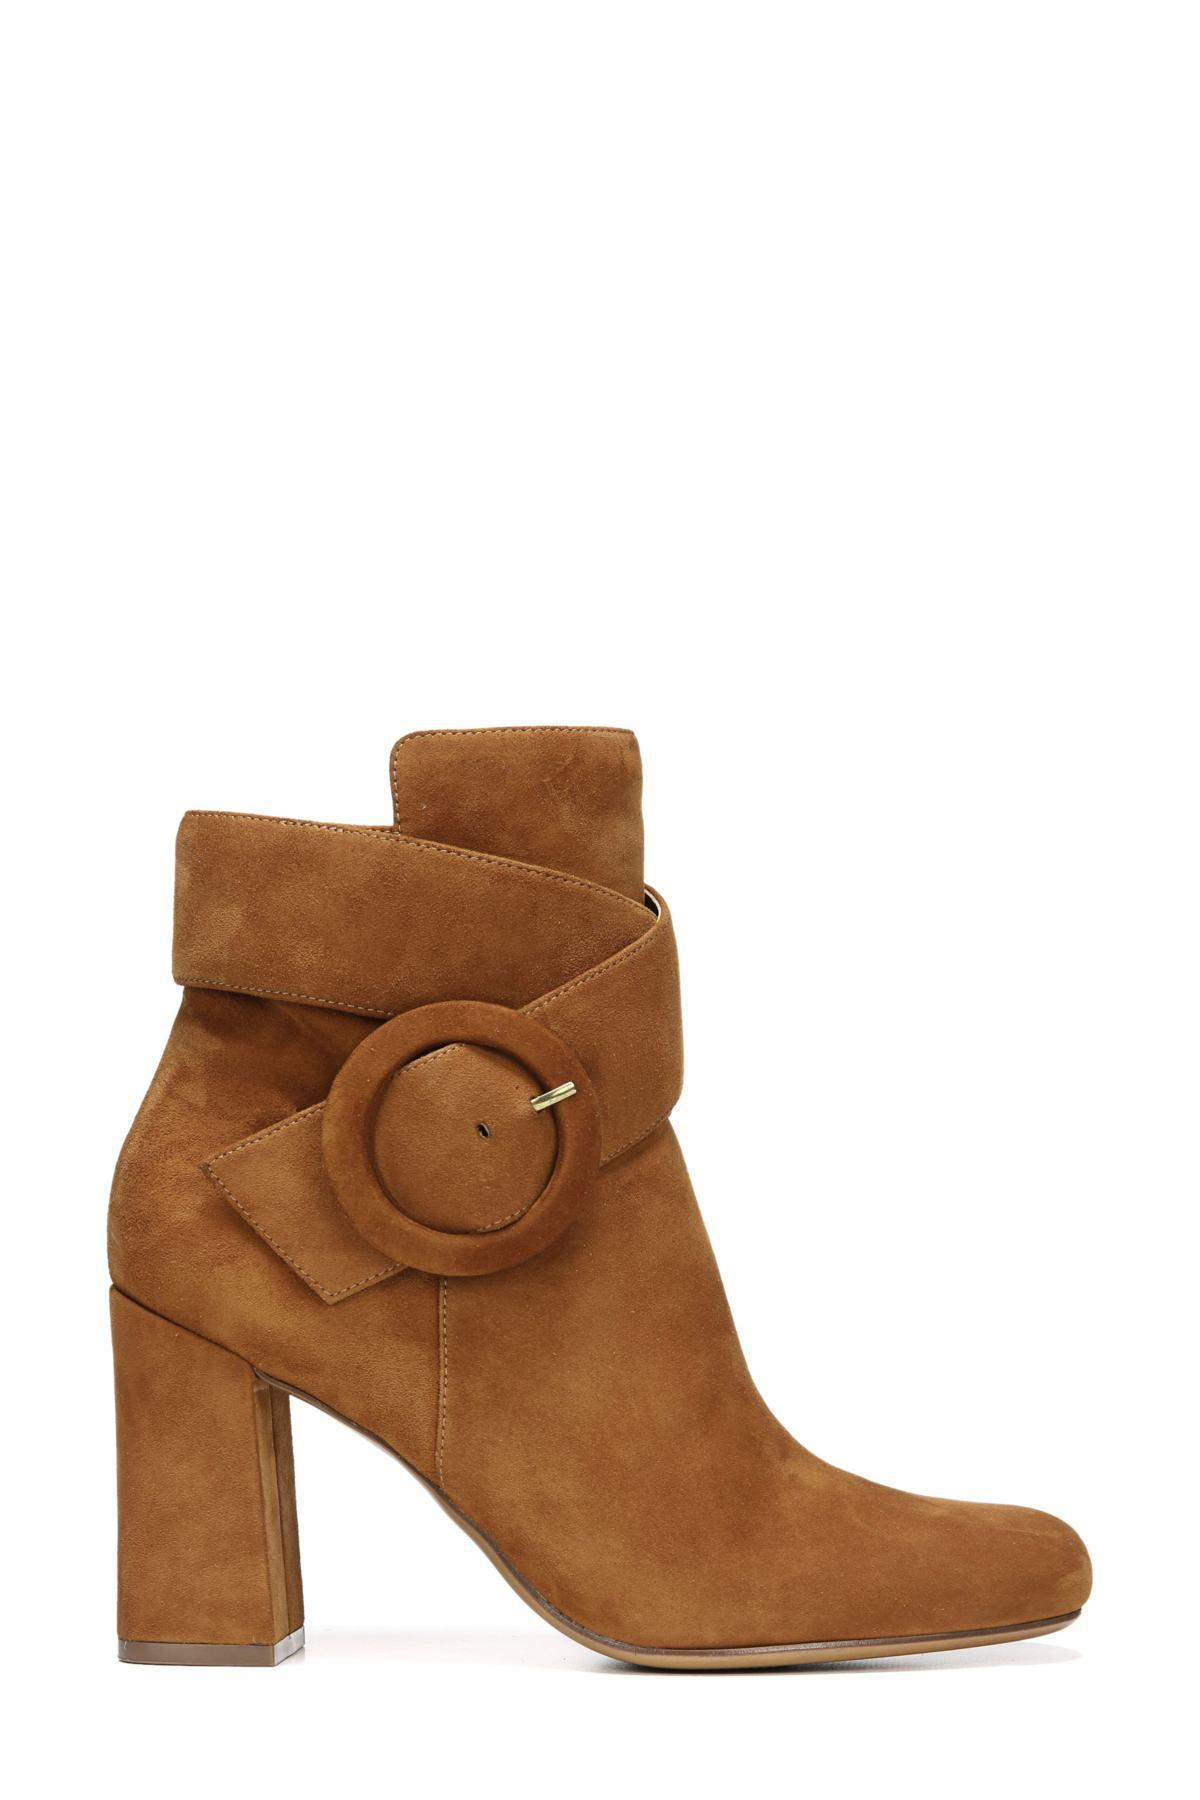 e455cd1220 Naturalizer - Brown Rae Bootie - Wide Width Available - Lyst. View  fullscreen